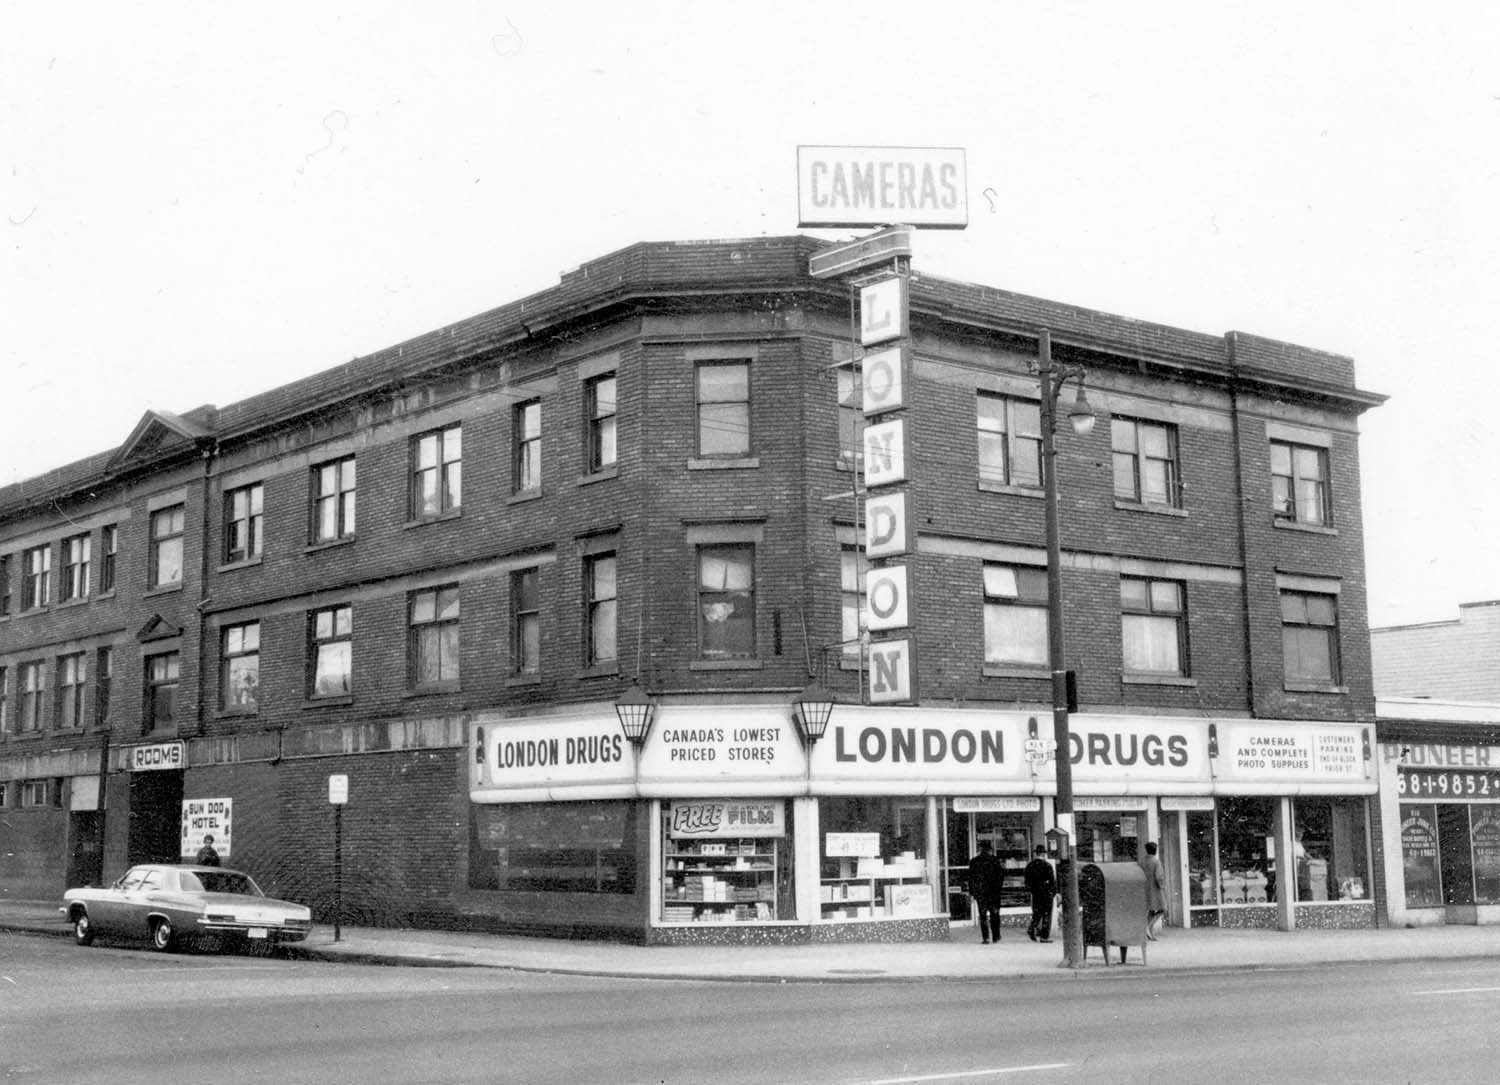 800 - 804 Main Street at Union Street, 1968. Photograph shows London Drugs (800 Main Street). Reference code COV-S168-: CVA 203-9